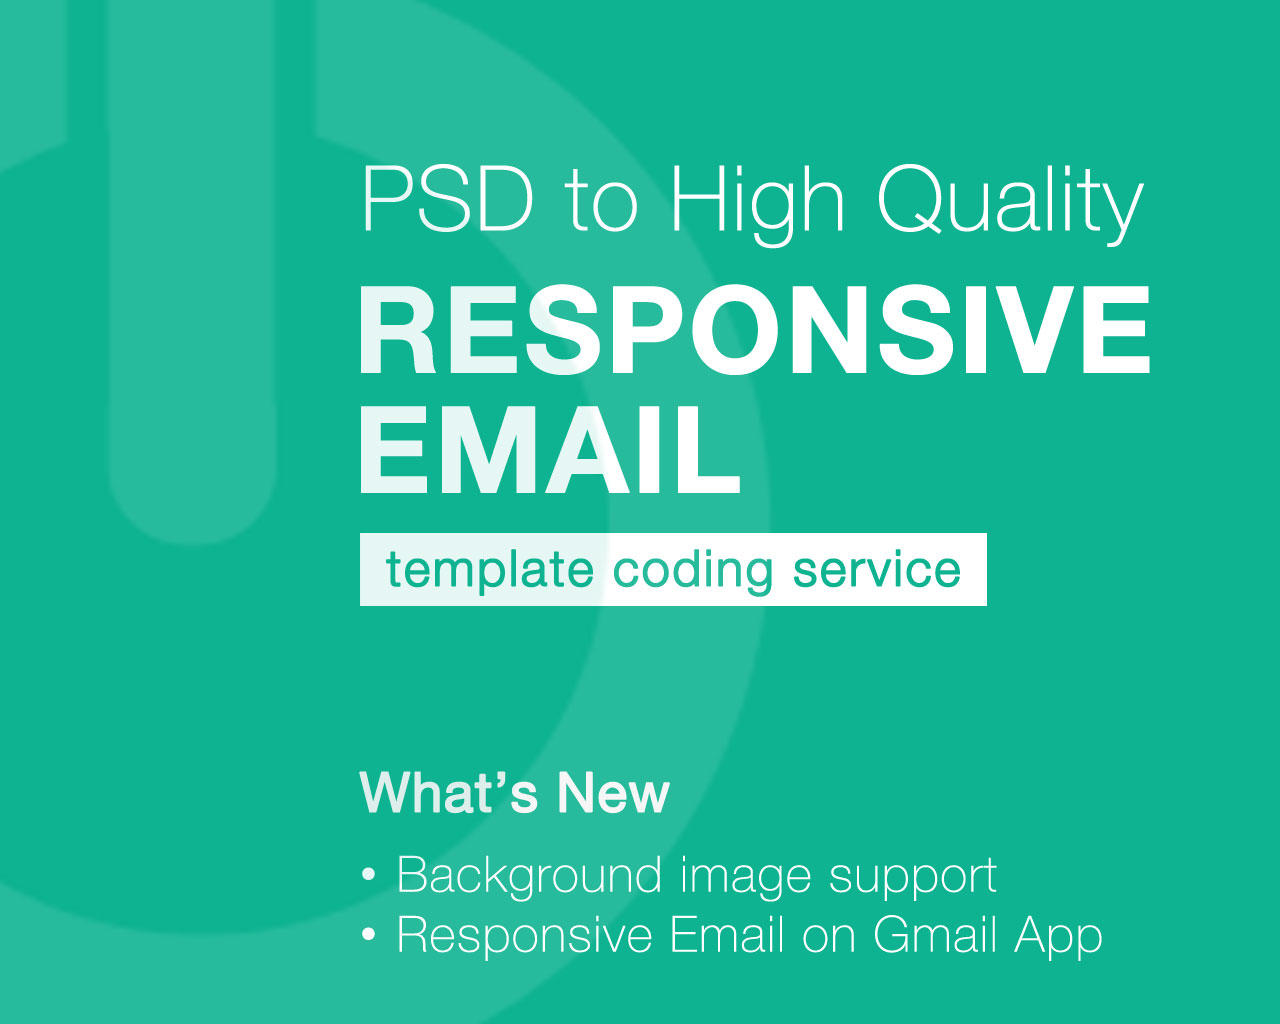 PSD to High Quality Responsive HTML Email Coding Service by theemon - 87590